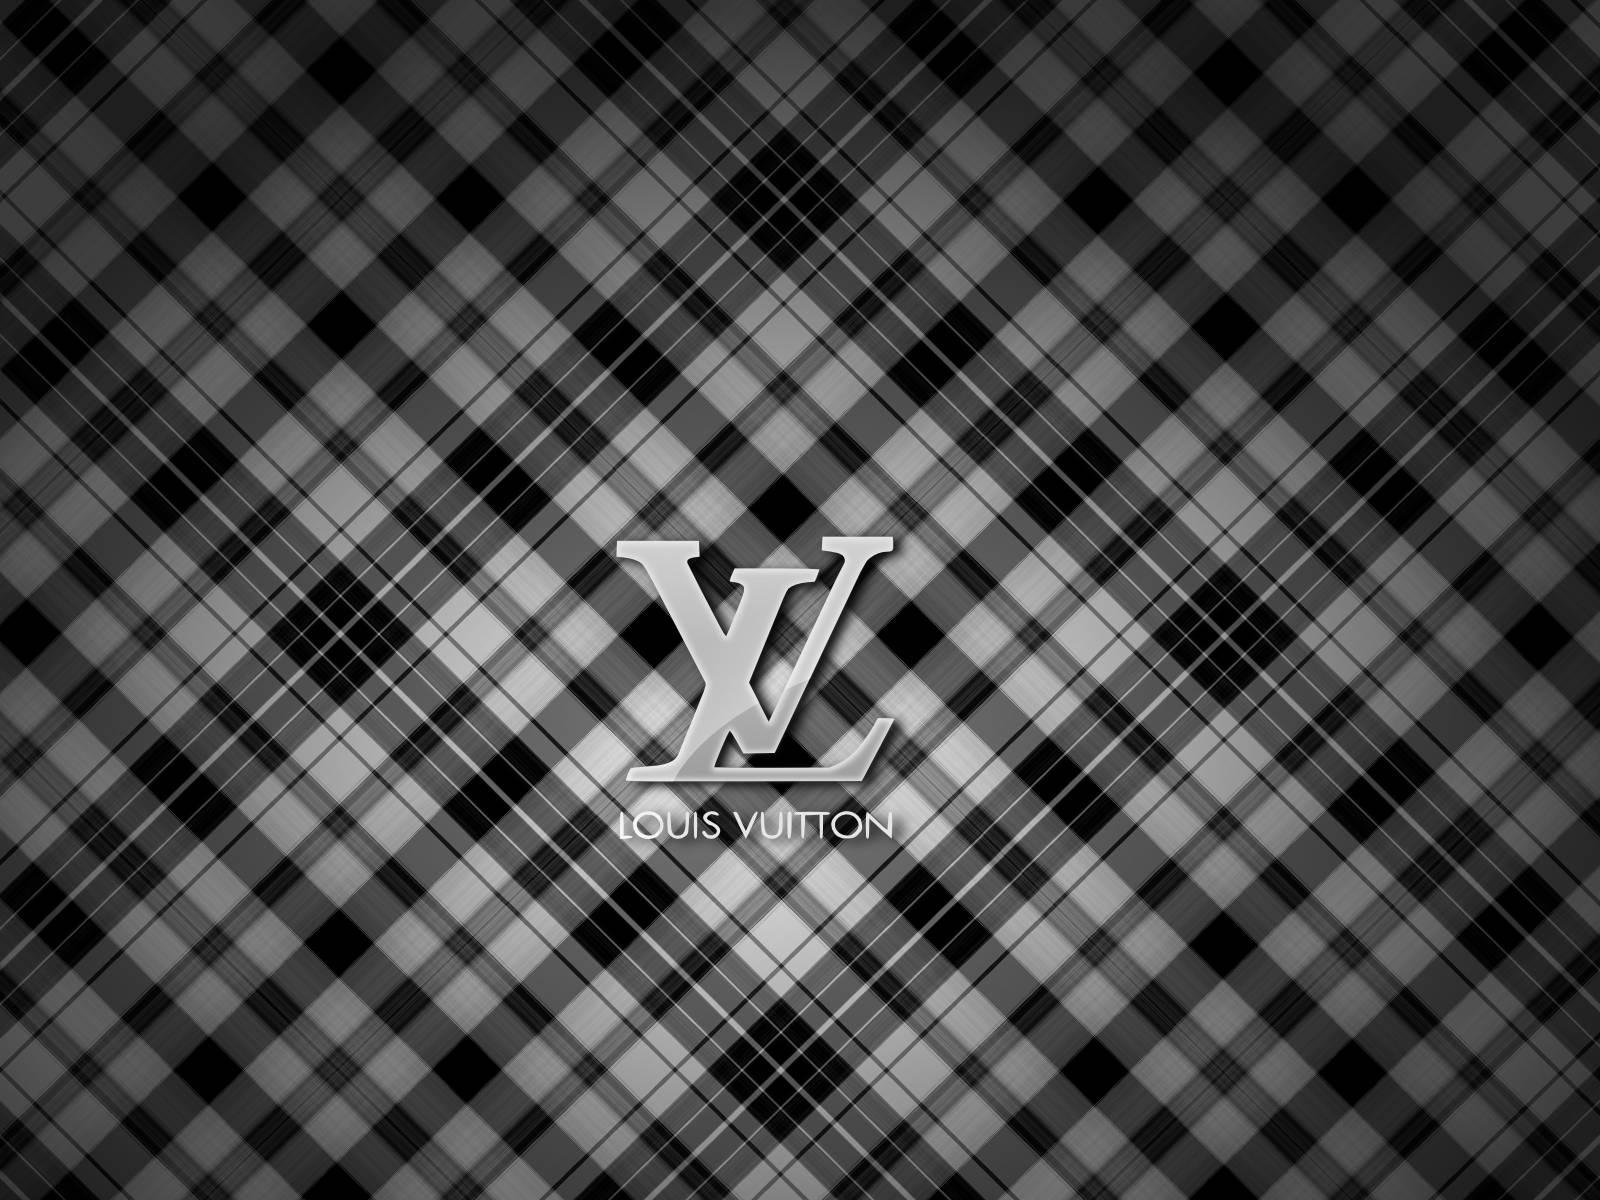 Download Fond Cran Louis Vuitton Taille Elle Wallpapers 1600x1200